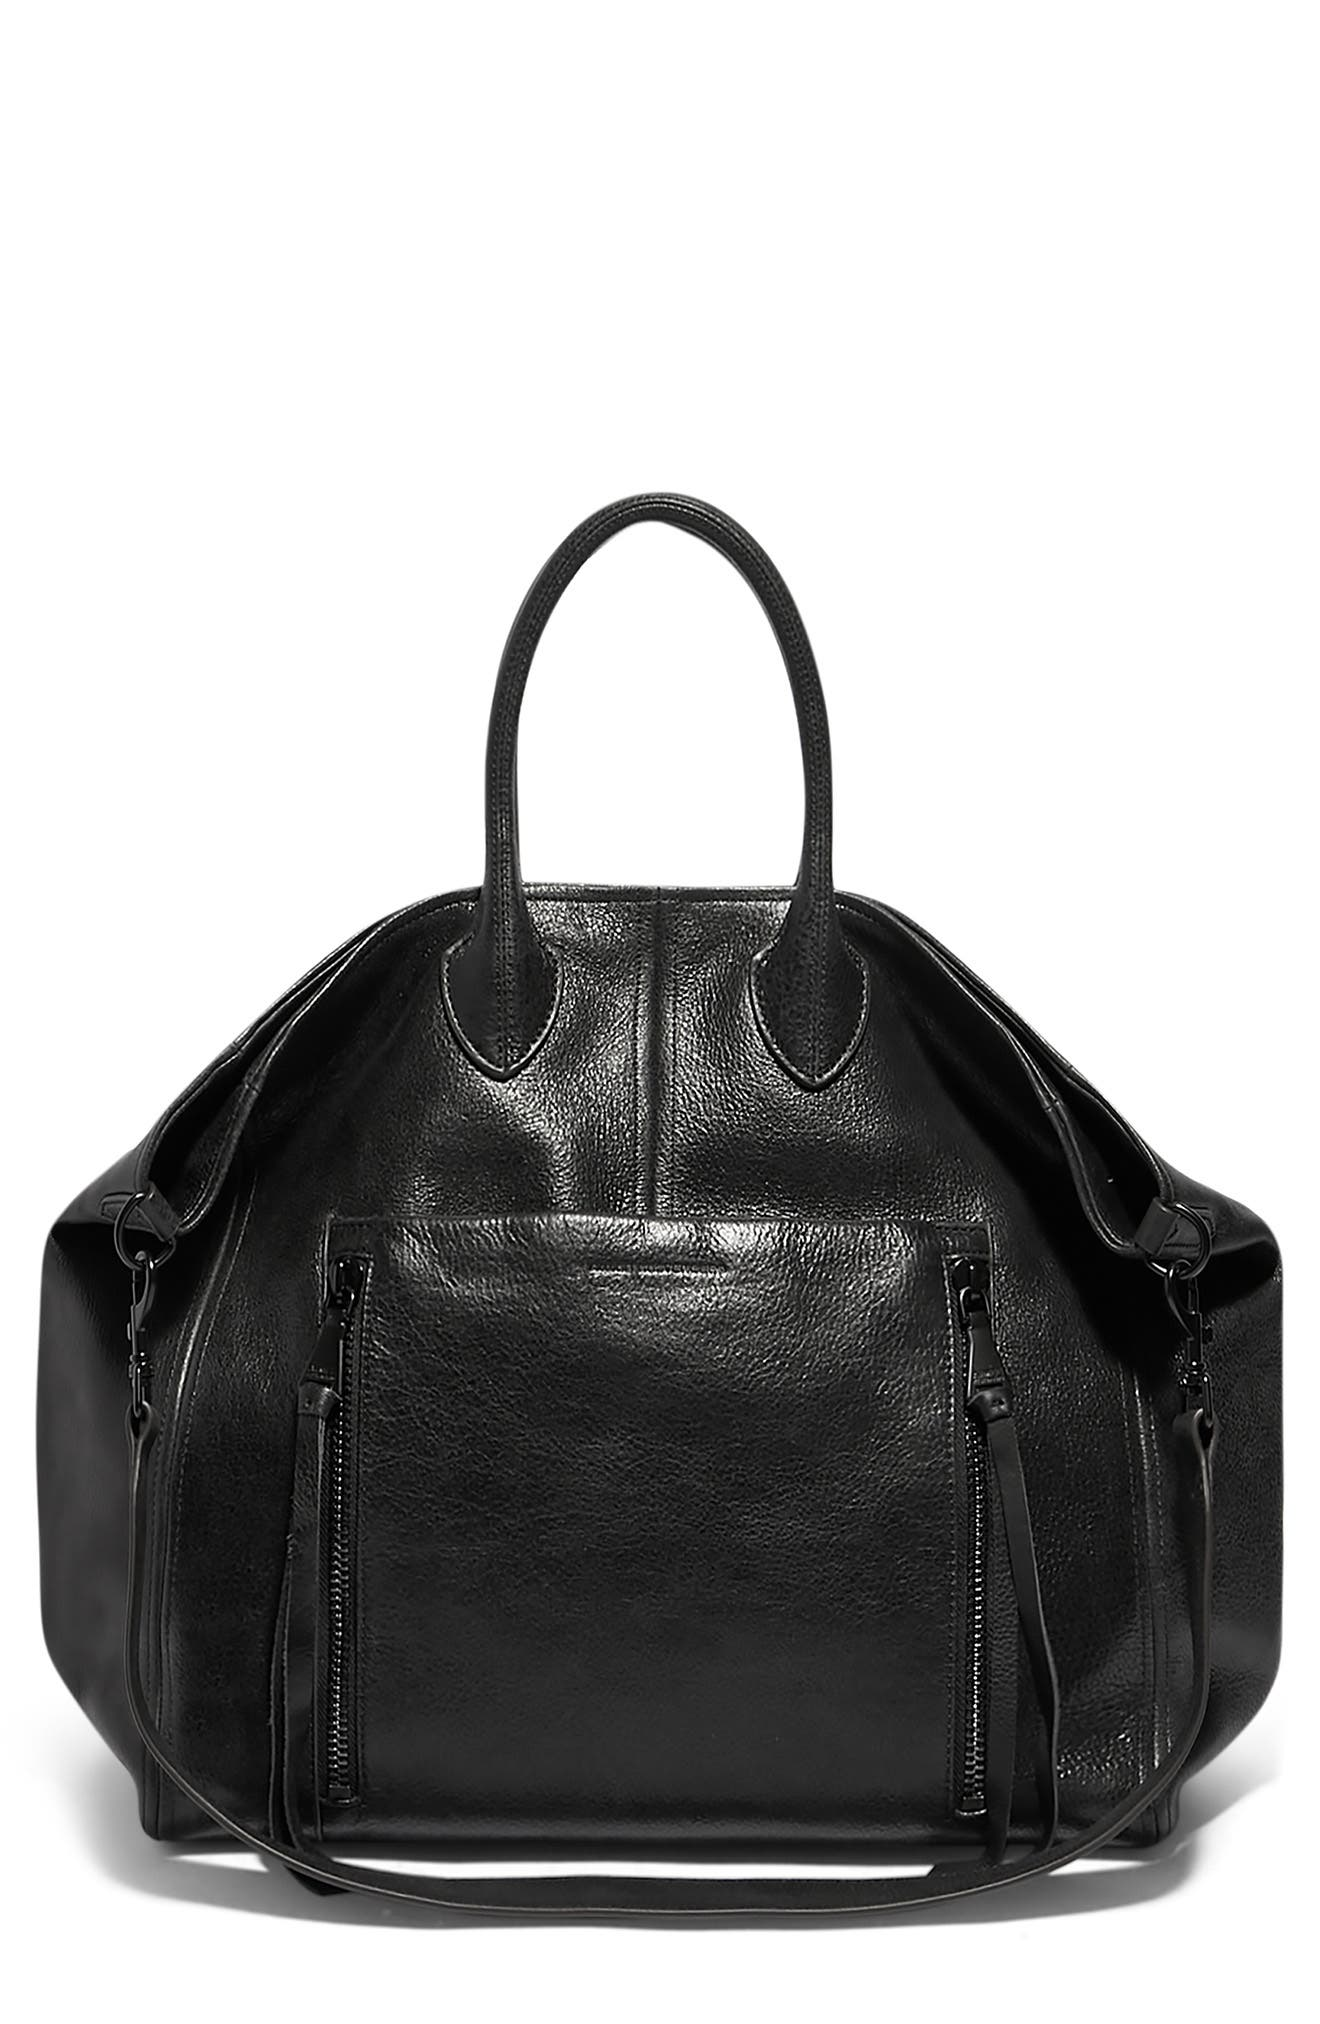 Let's Ride Convertible Tote